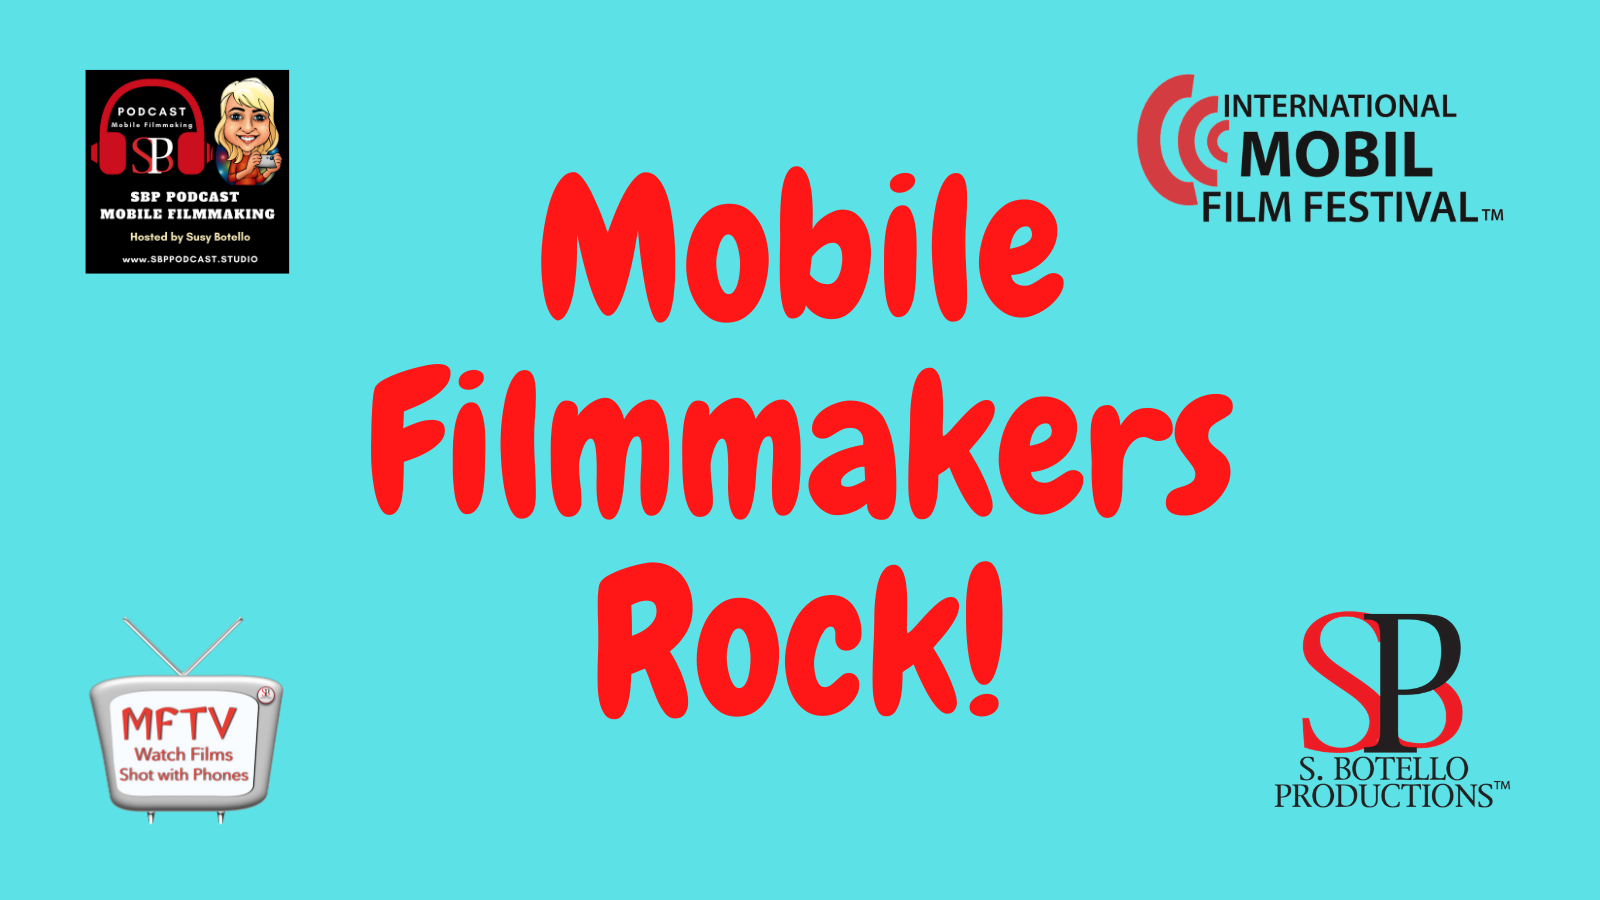 Mobile Filmmakers Rock